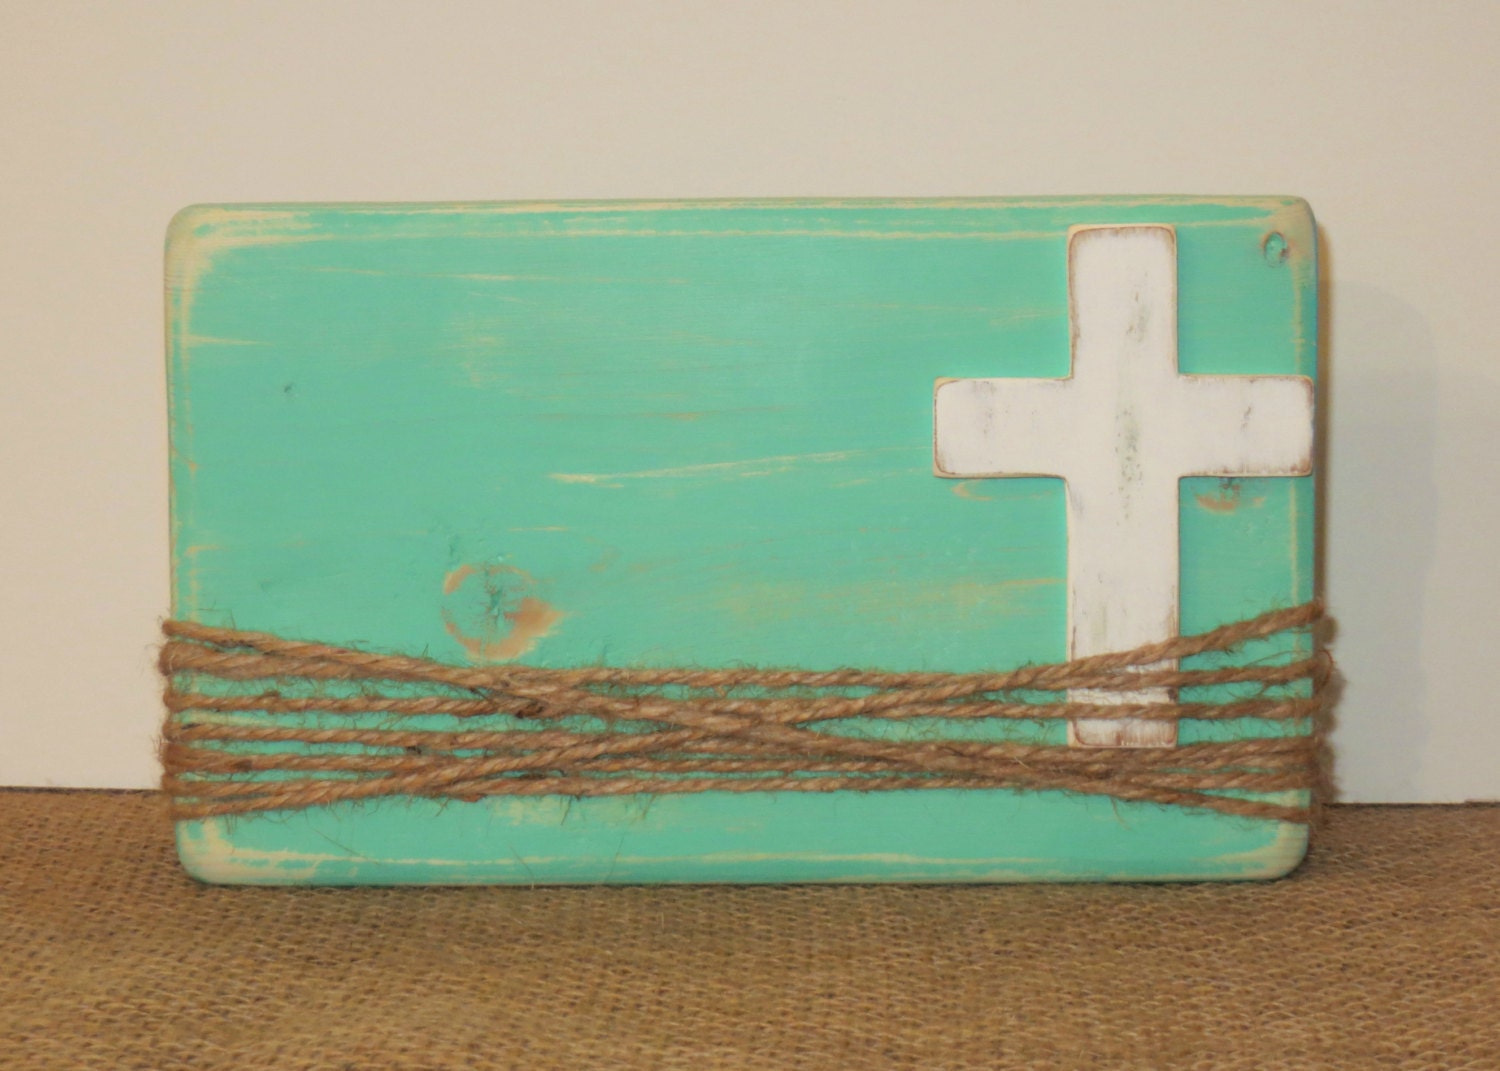 rustic wooden cross beach decor distressed wood wood cross frame religious decor - Wooden Cross Frame